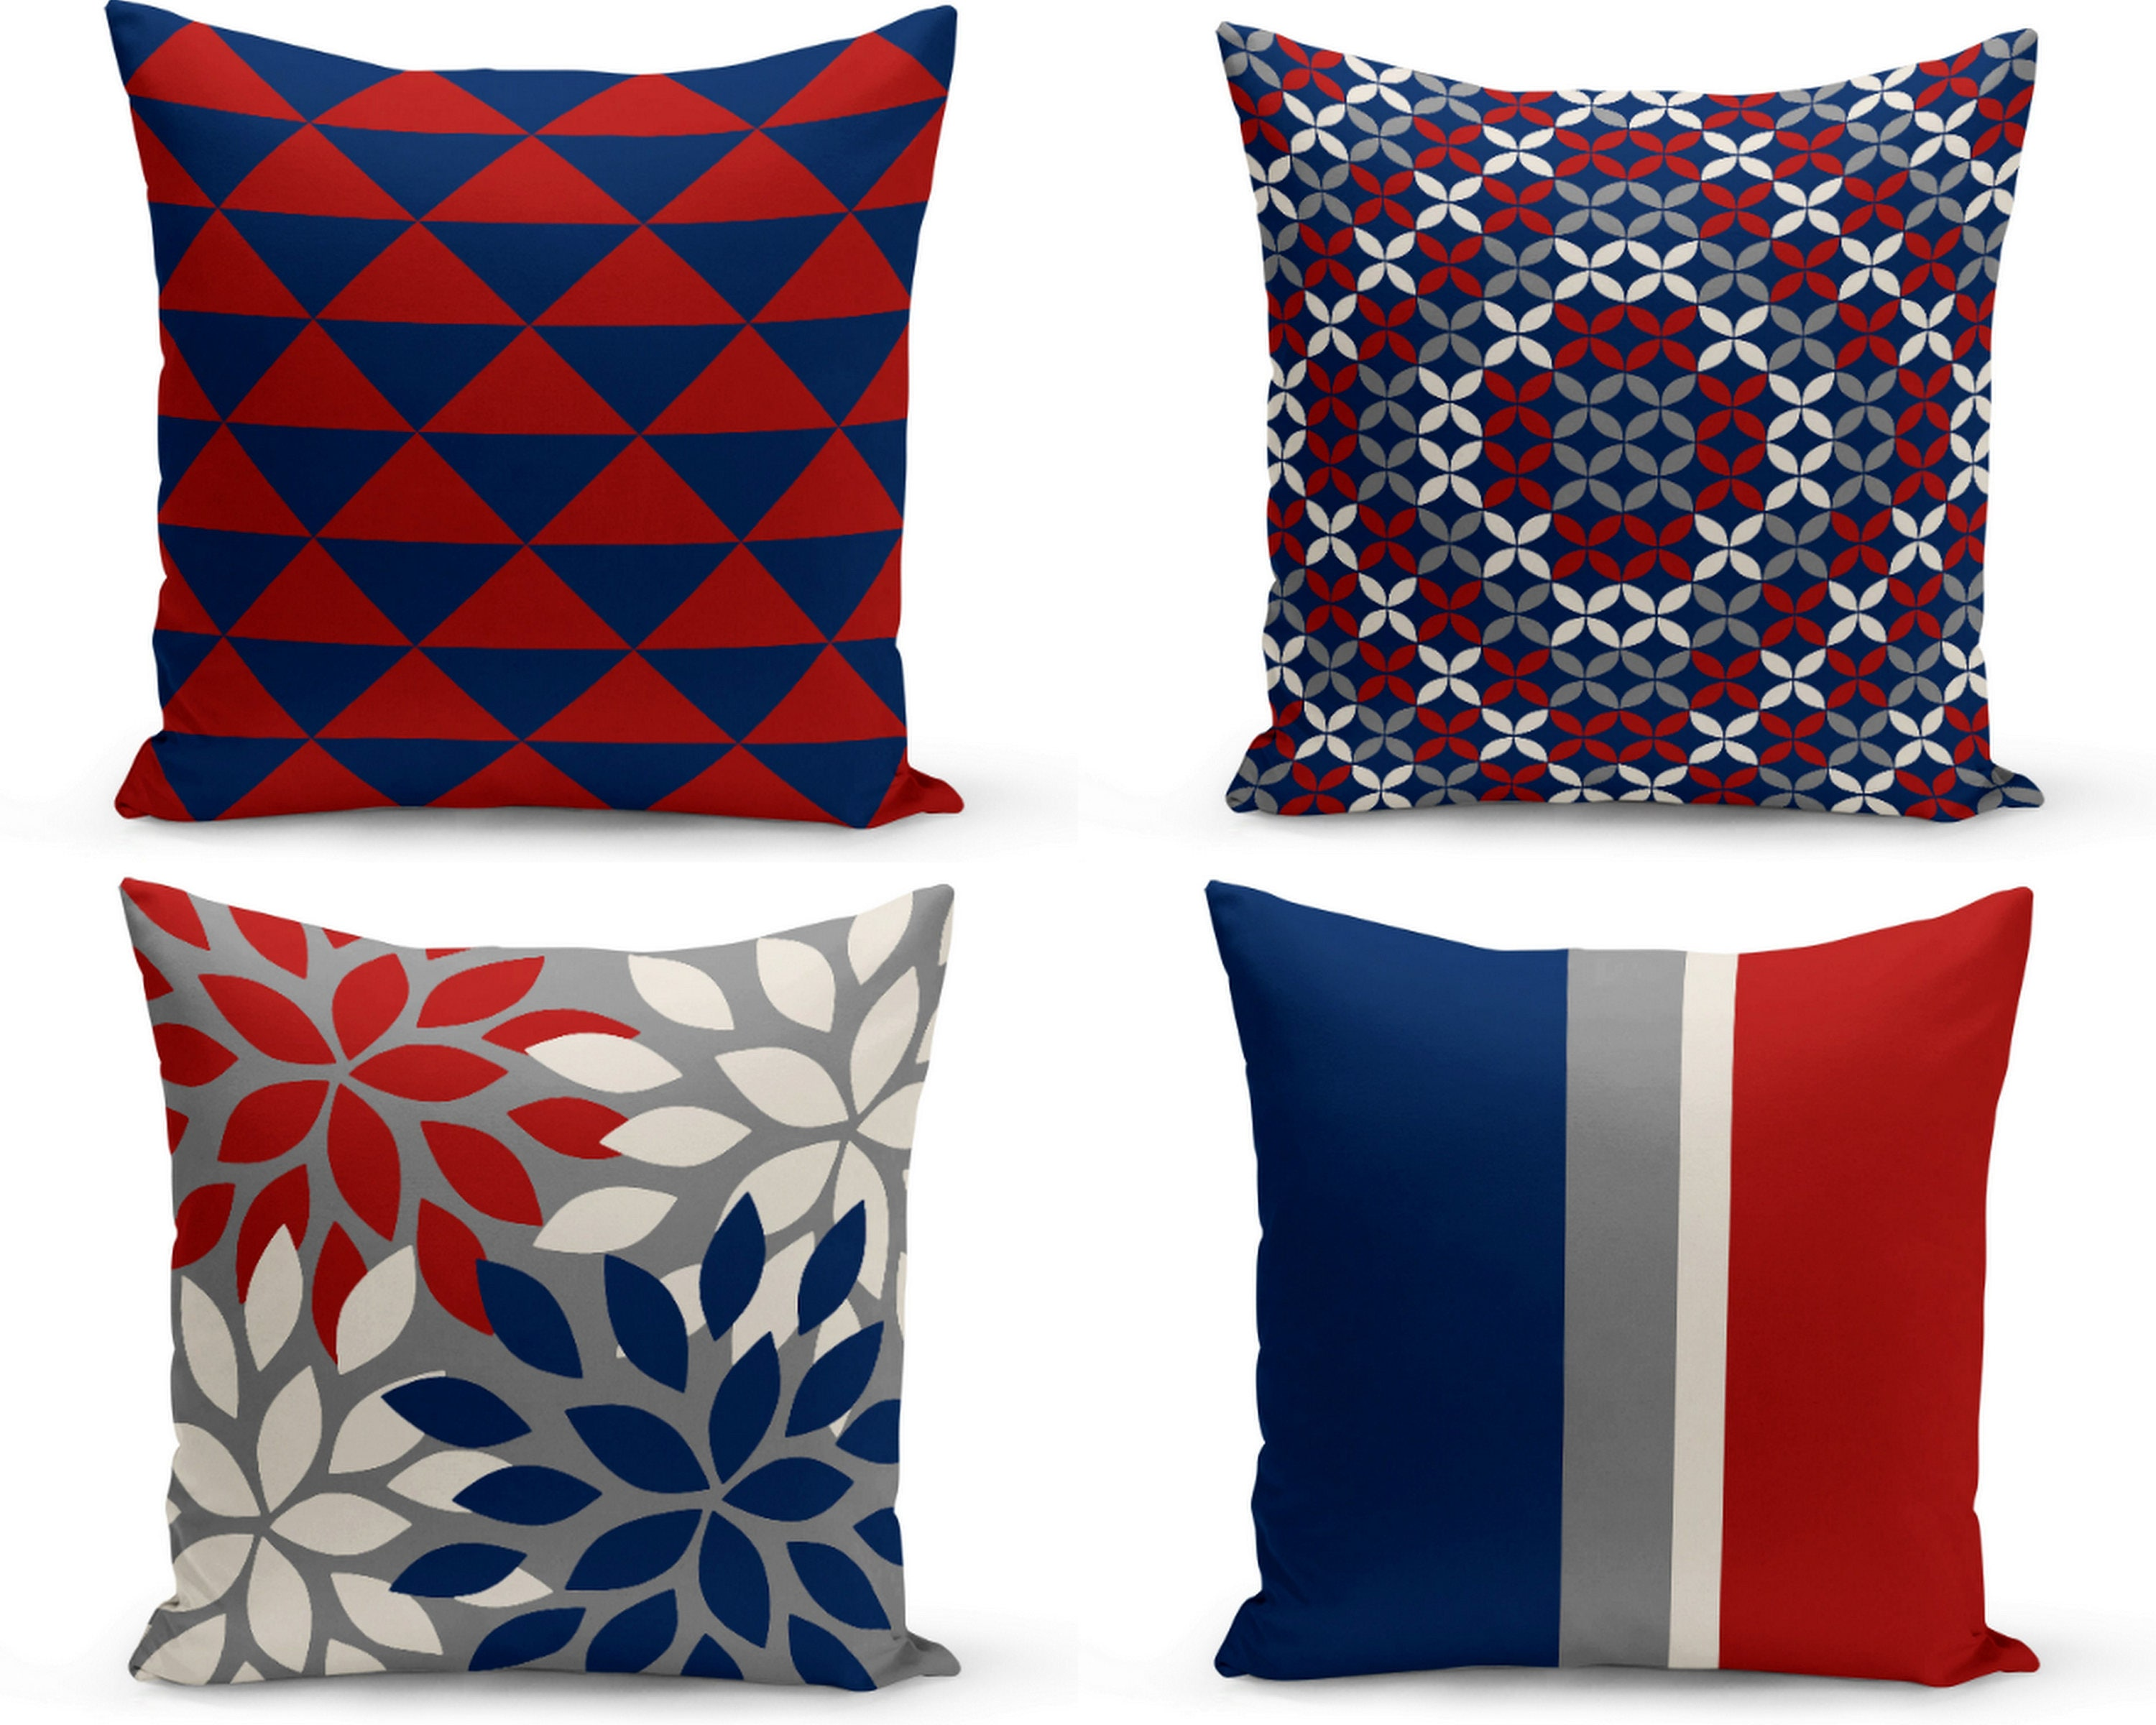 Home Decorators Outdoor Cushions: Outdoor Pillows Grey Red Navy Off White Outdoor Home Decor